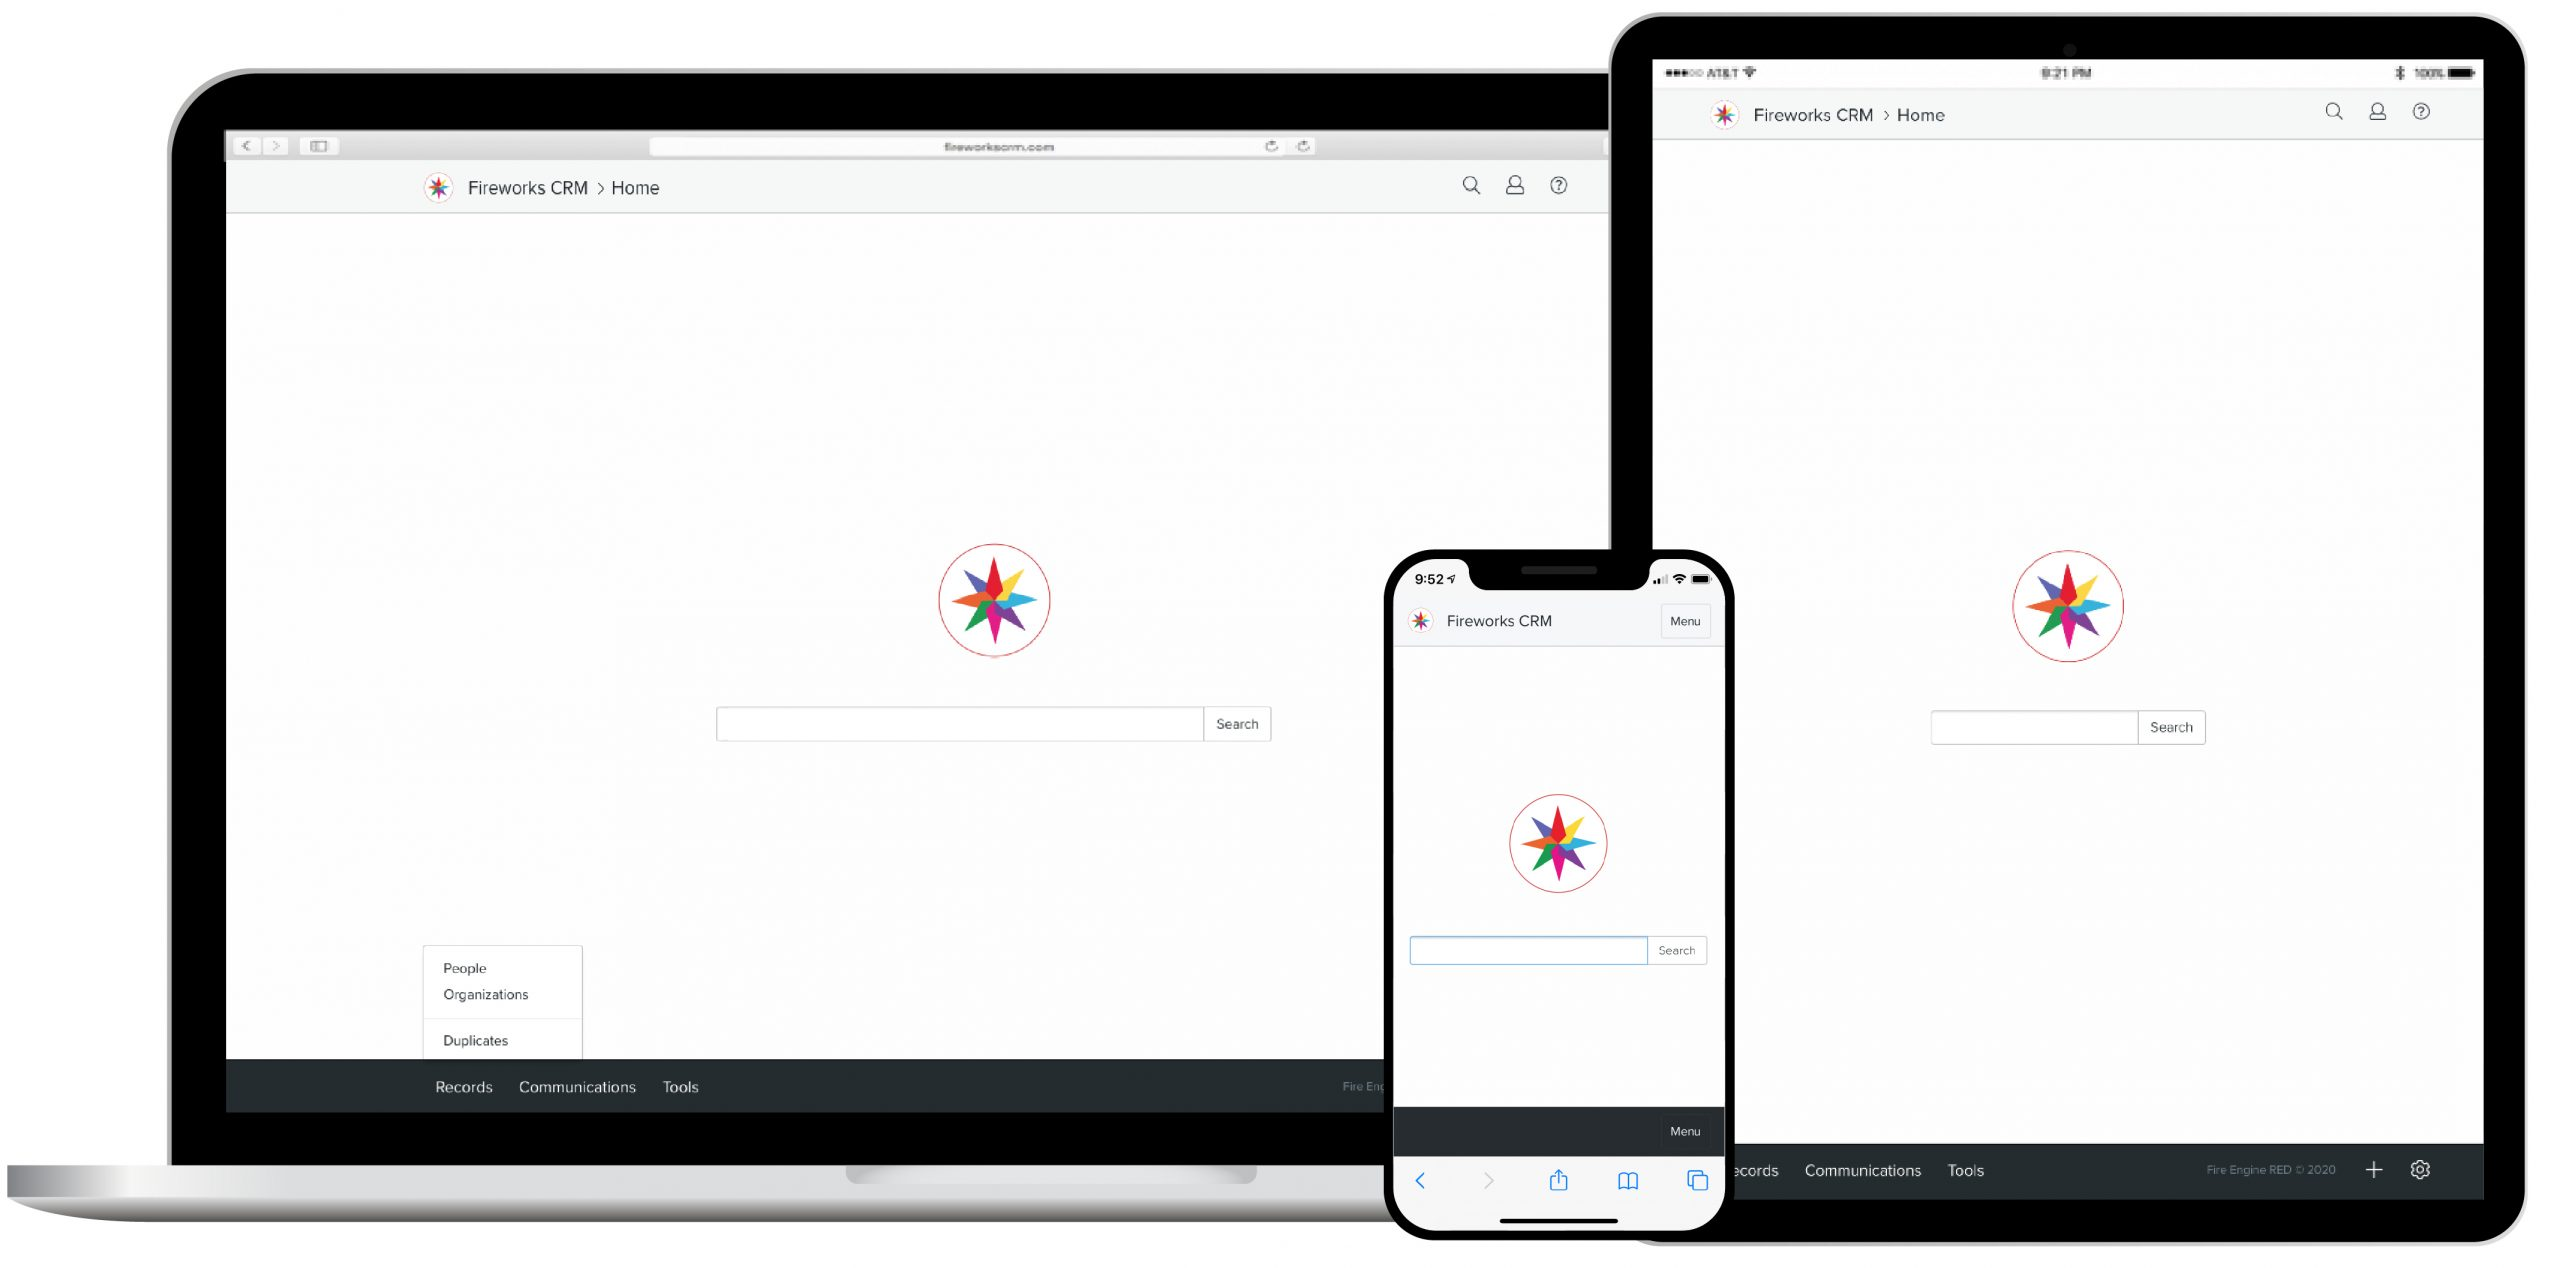 Fireworks CRM Devices